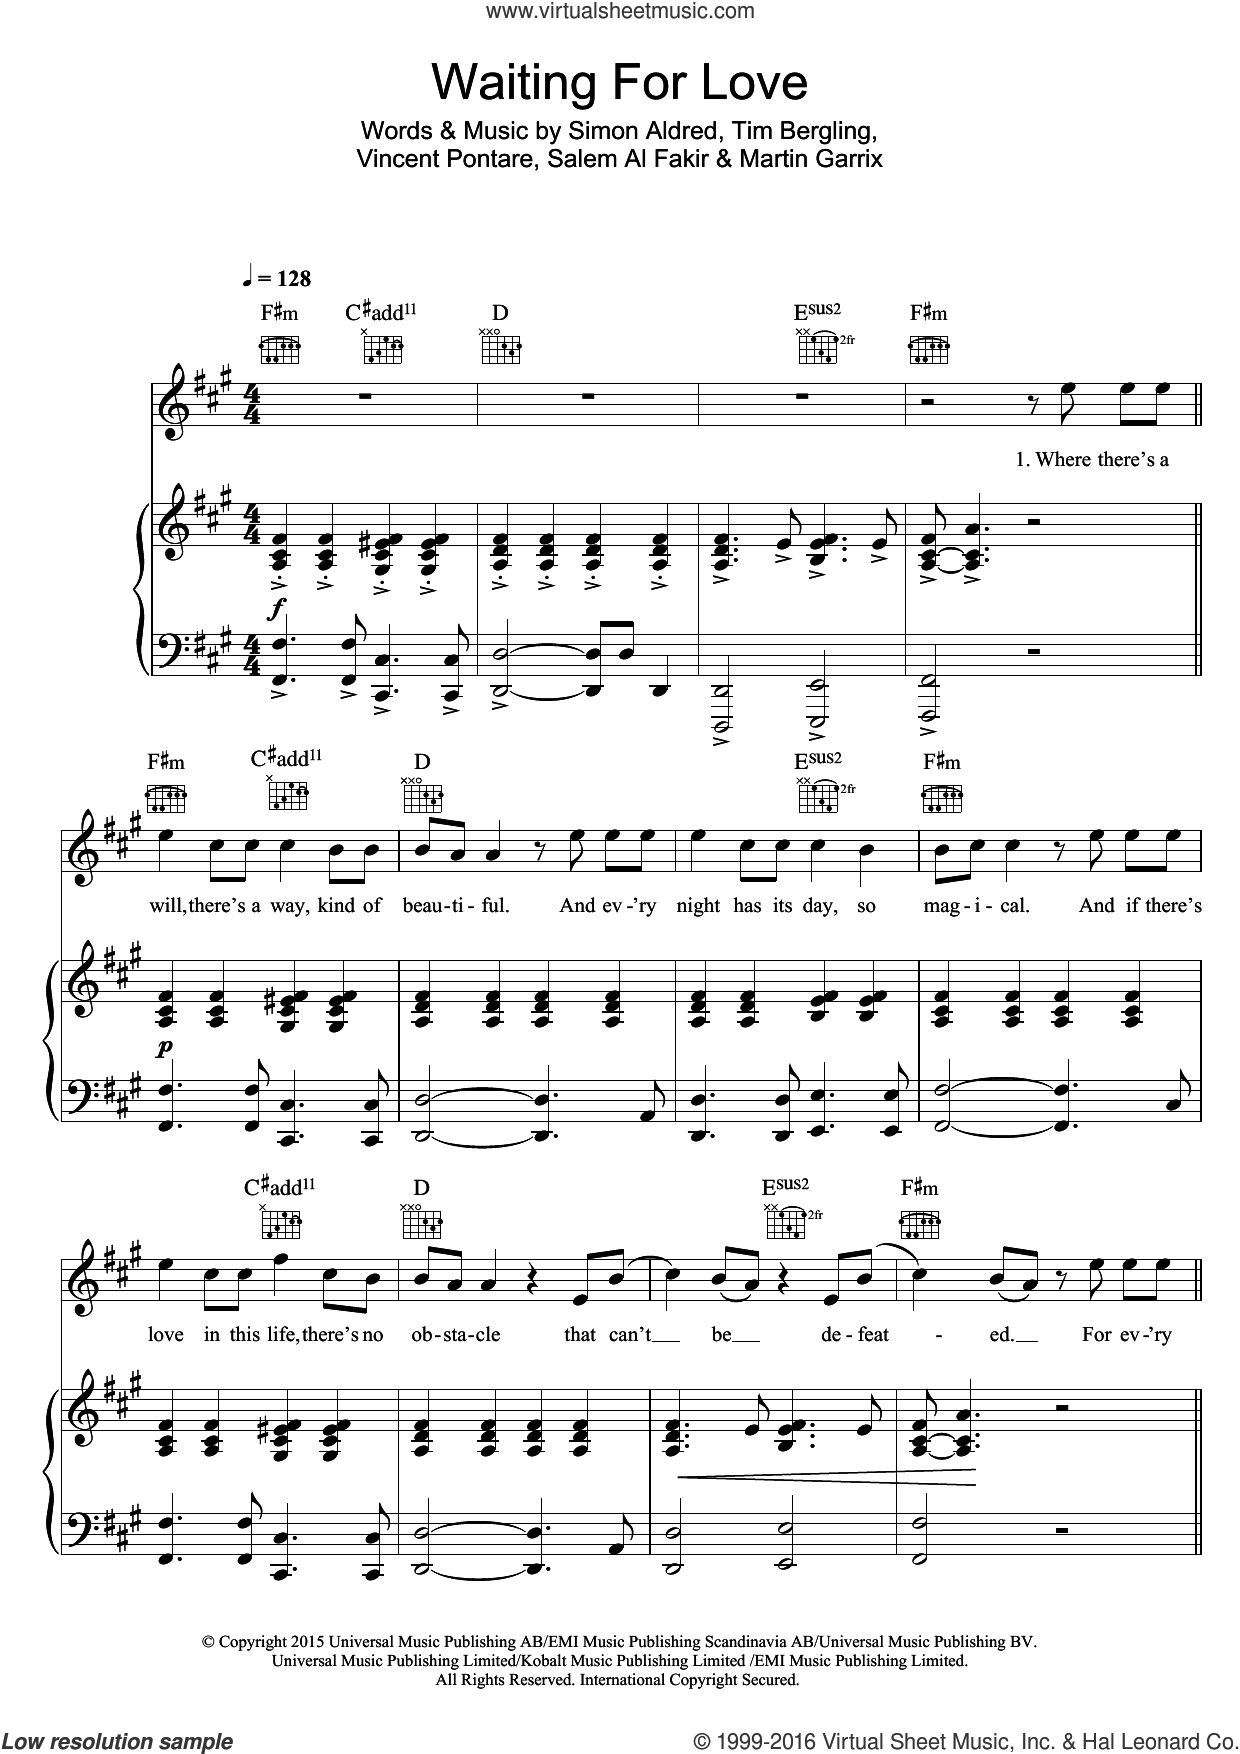 Waiting For Love sheet music for voice, piano or guitar by Avicii, Martin Garrix, Salem Al Fakir, Simon Aldred, Tim Bergling and Vincent Pontare, intermediate skill level